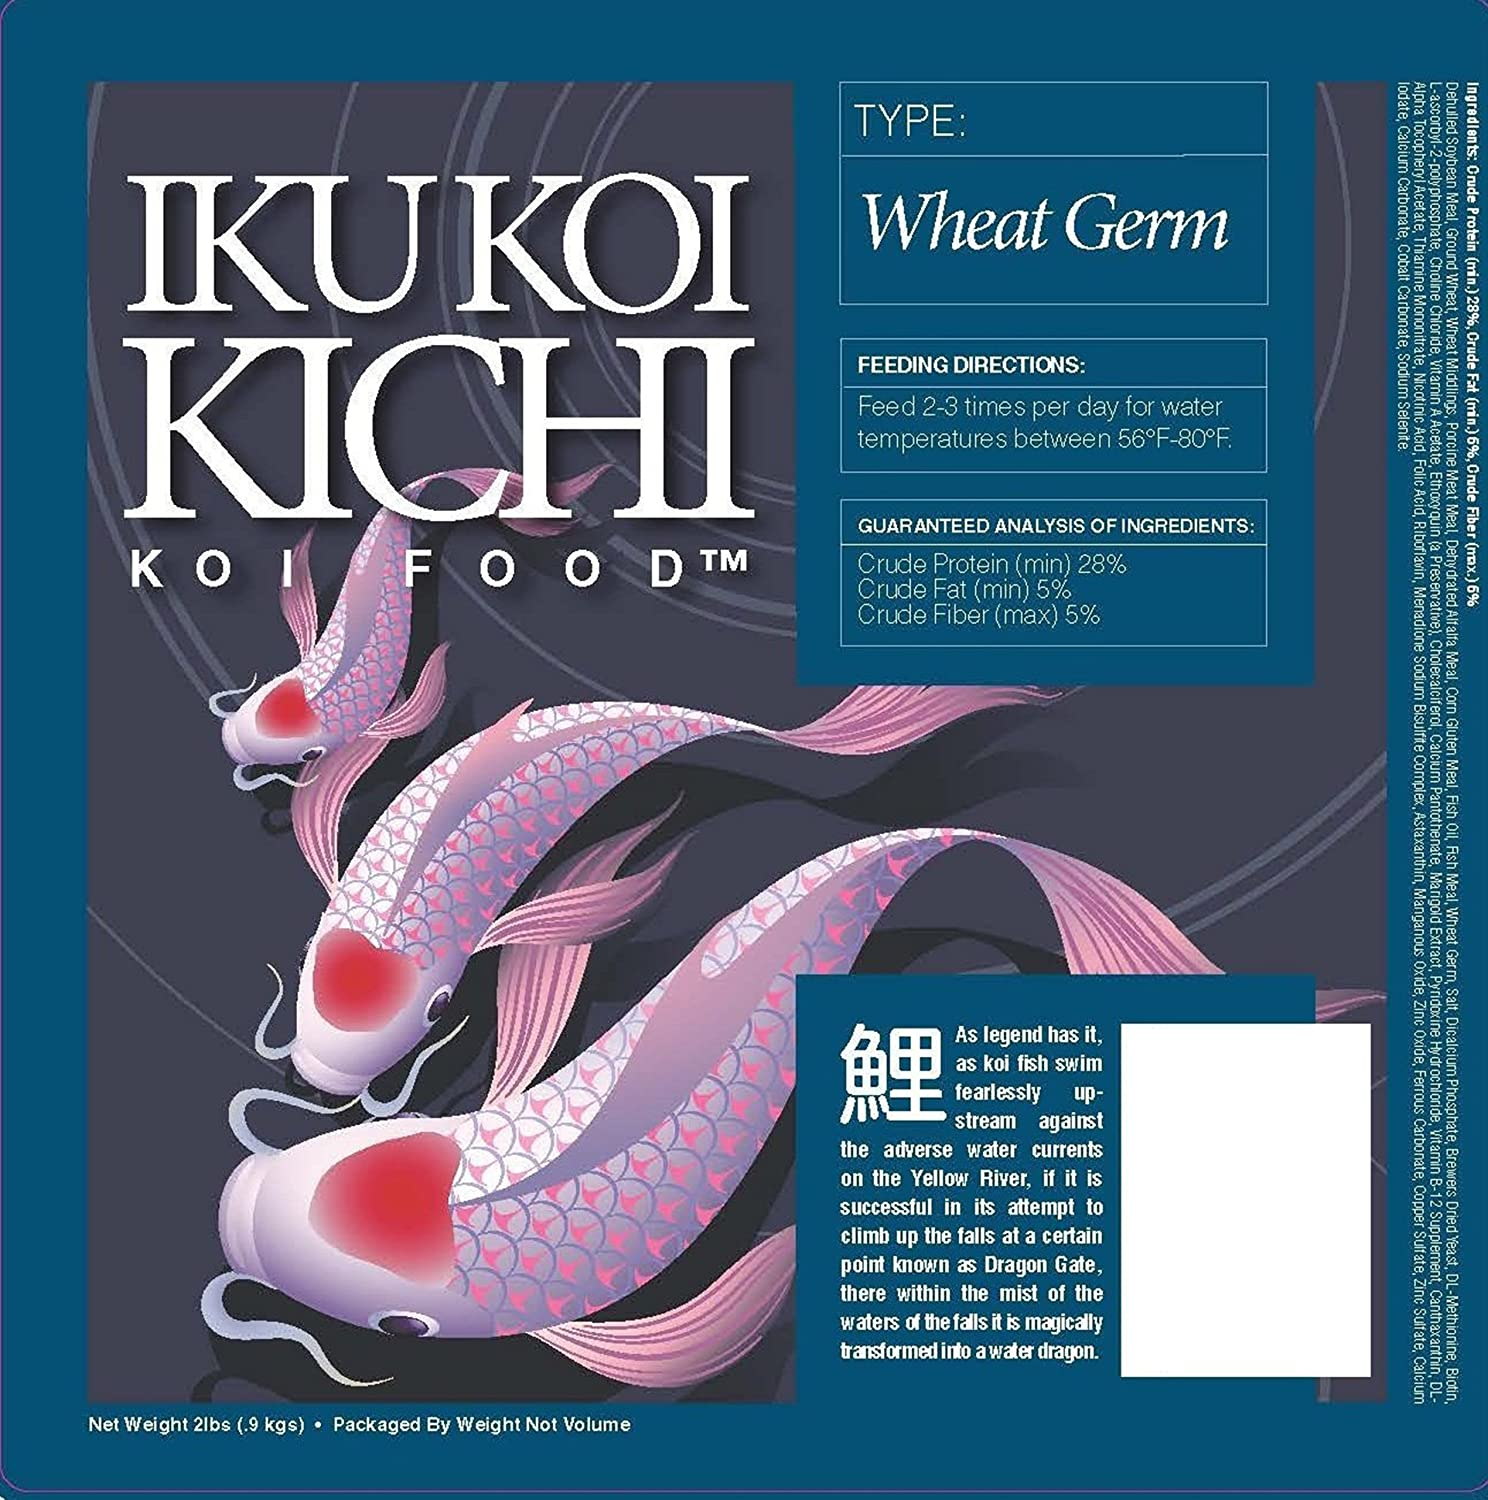 Iku Koi Kichi Wheat Germ Koi Fish Food